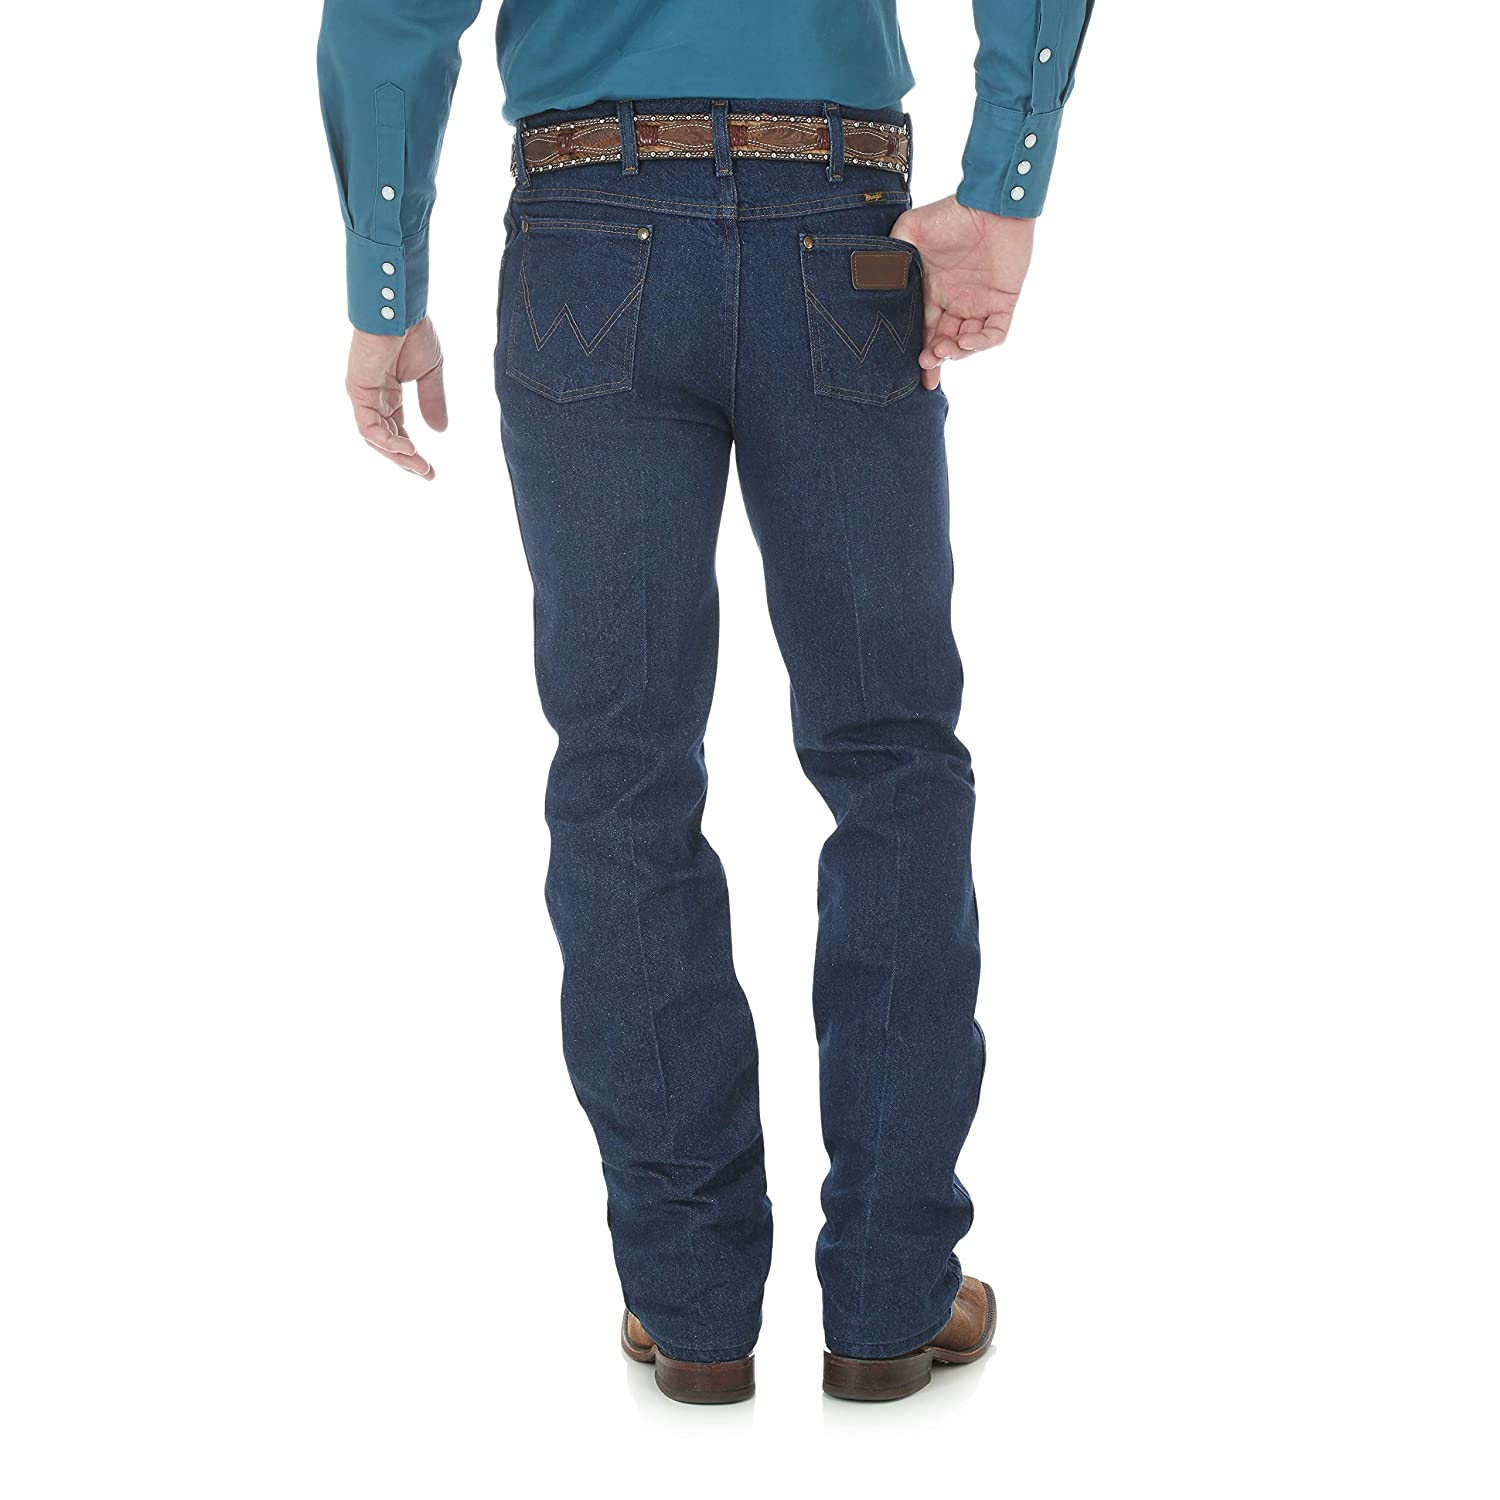 93bfe5f2 Wrangler Men's Premium Performance Cowboy Cut Slim Fit Jean at Amazon Men's  Clothing store: